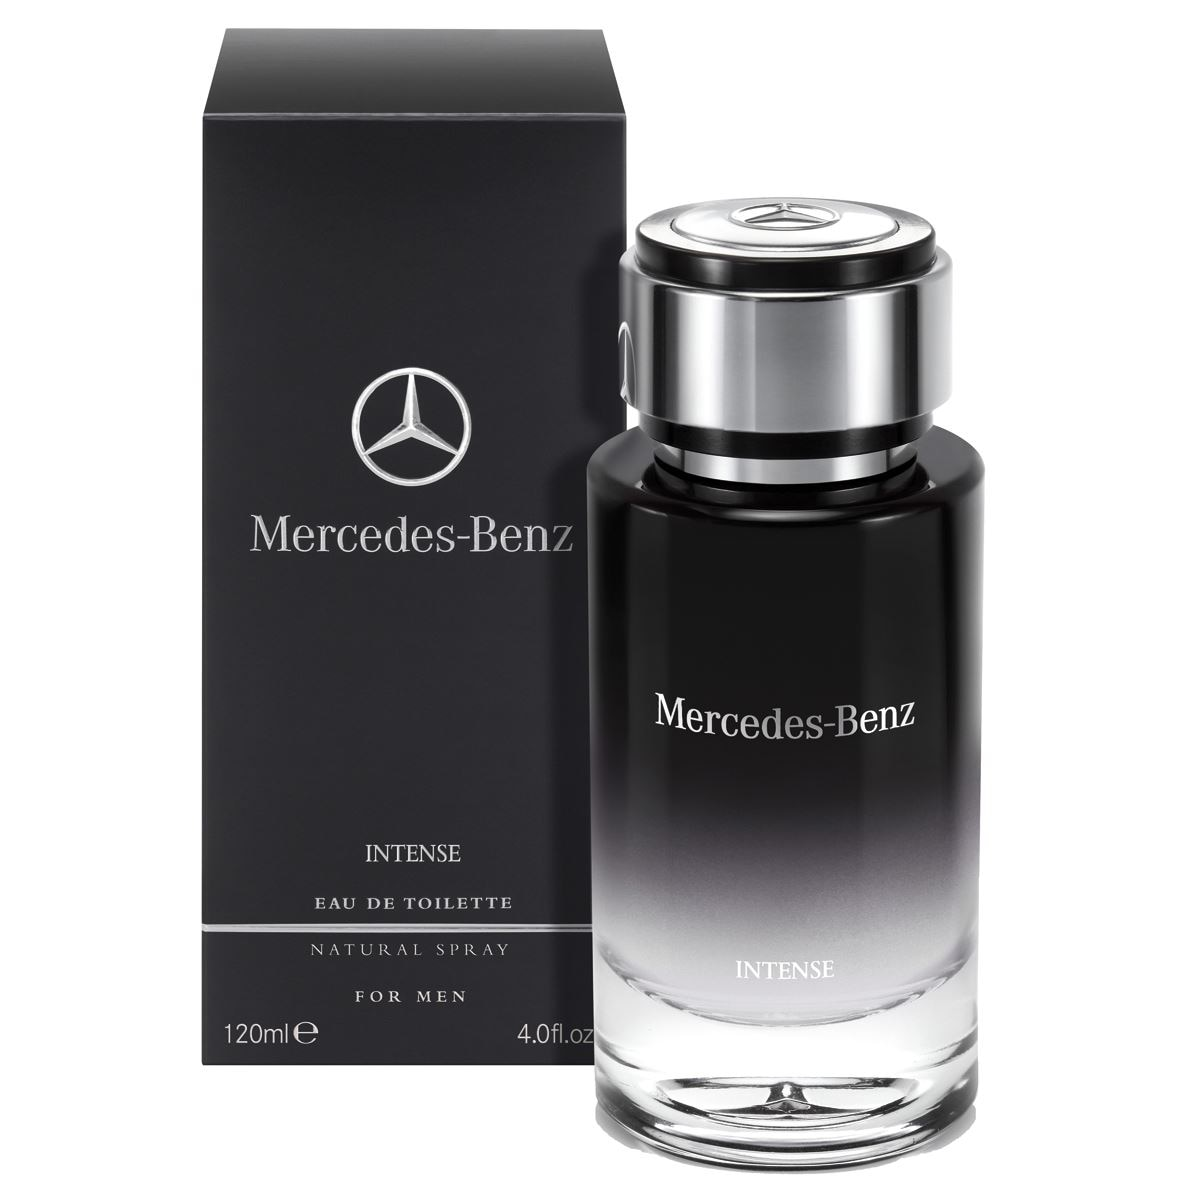 Fragancia Para Caballero Mercedes Benz Intense Edt 120ml